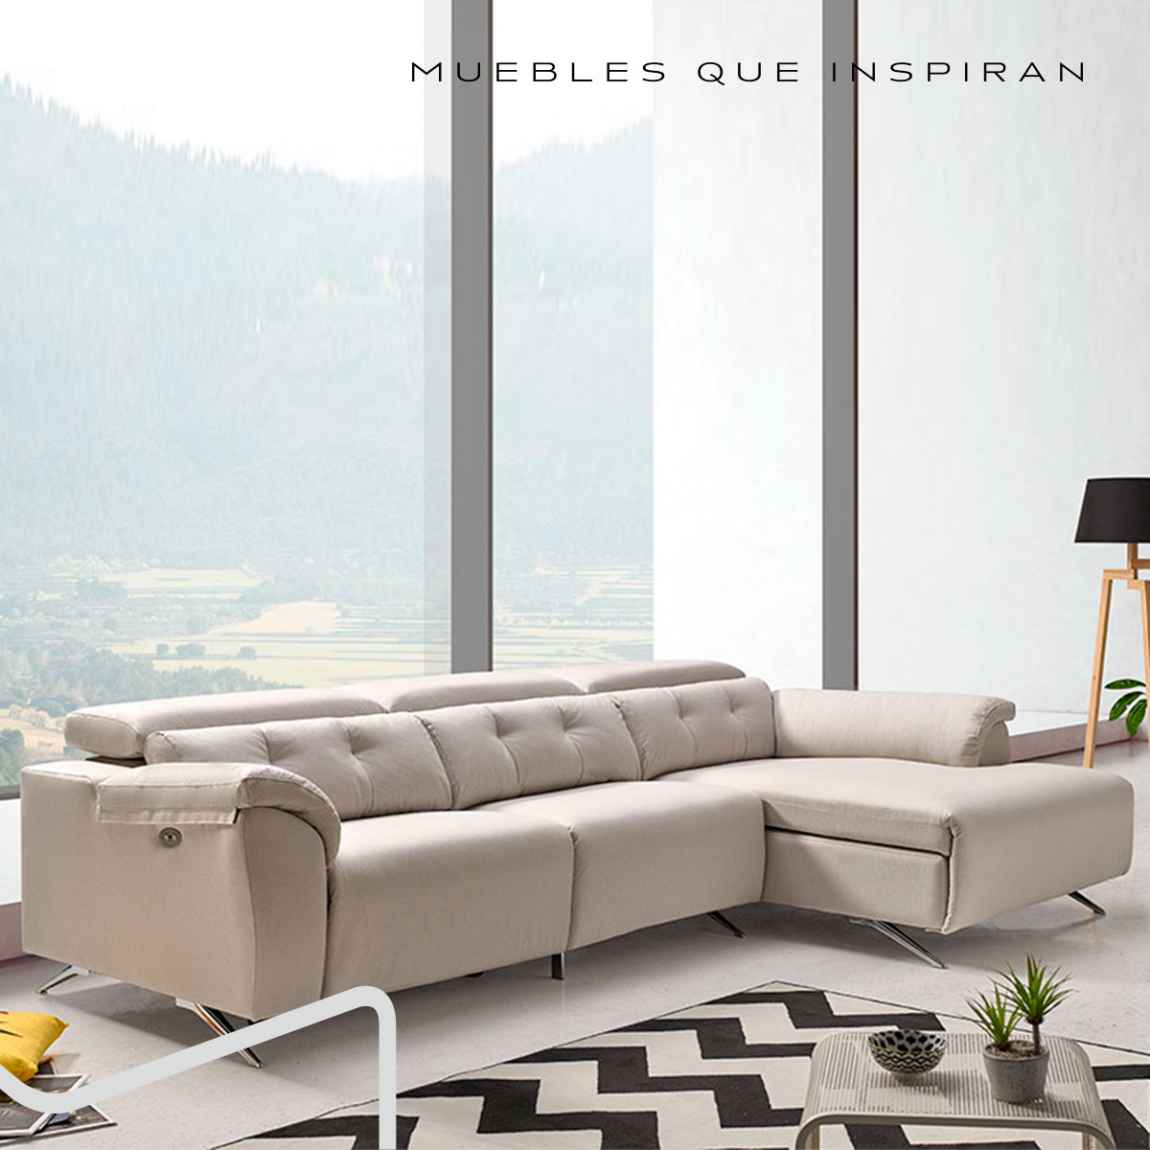 CHAISE LONGUE NEO Mobles Rossi